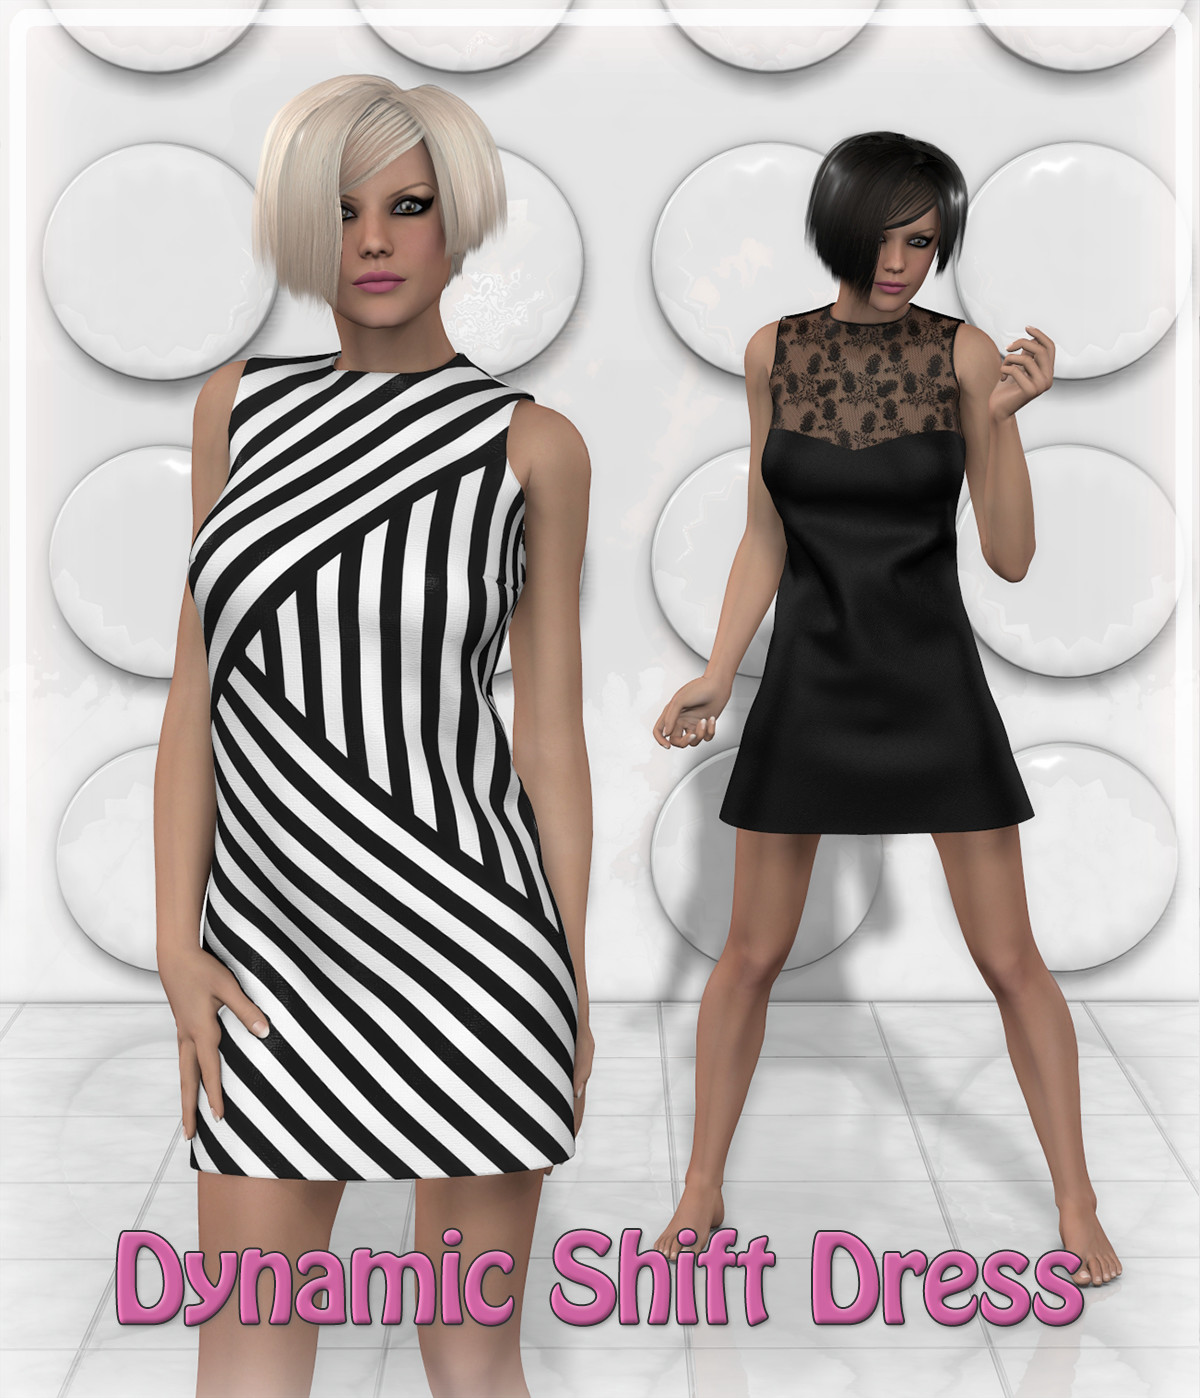 Dynamic Shift Dress